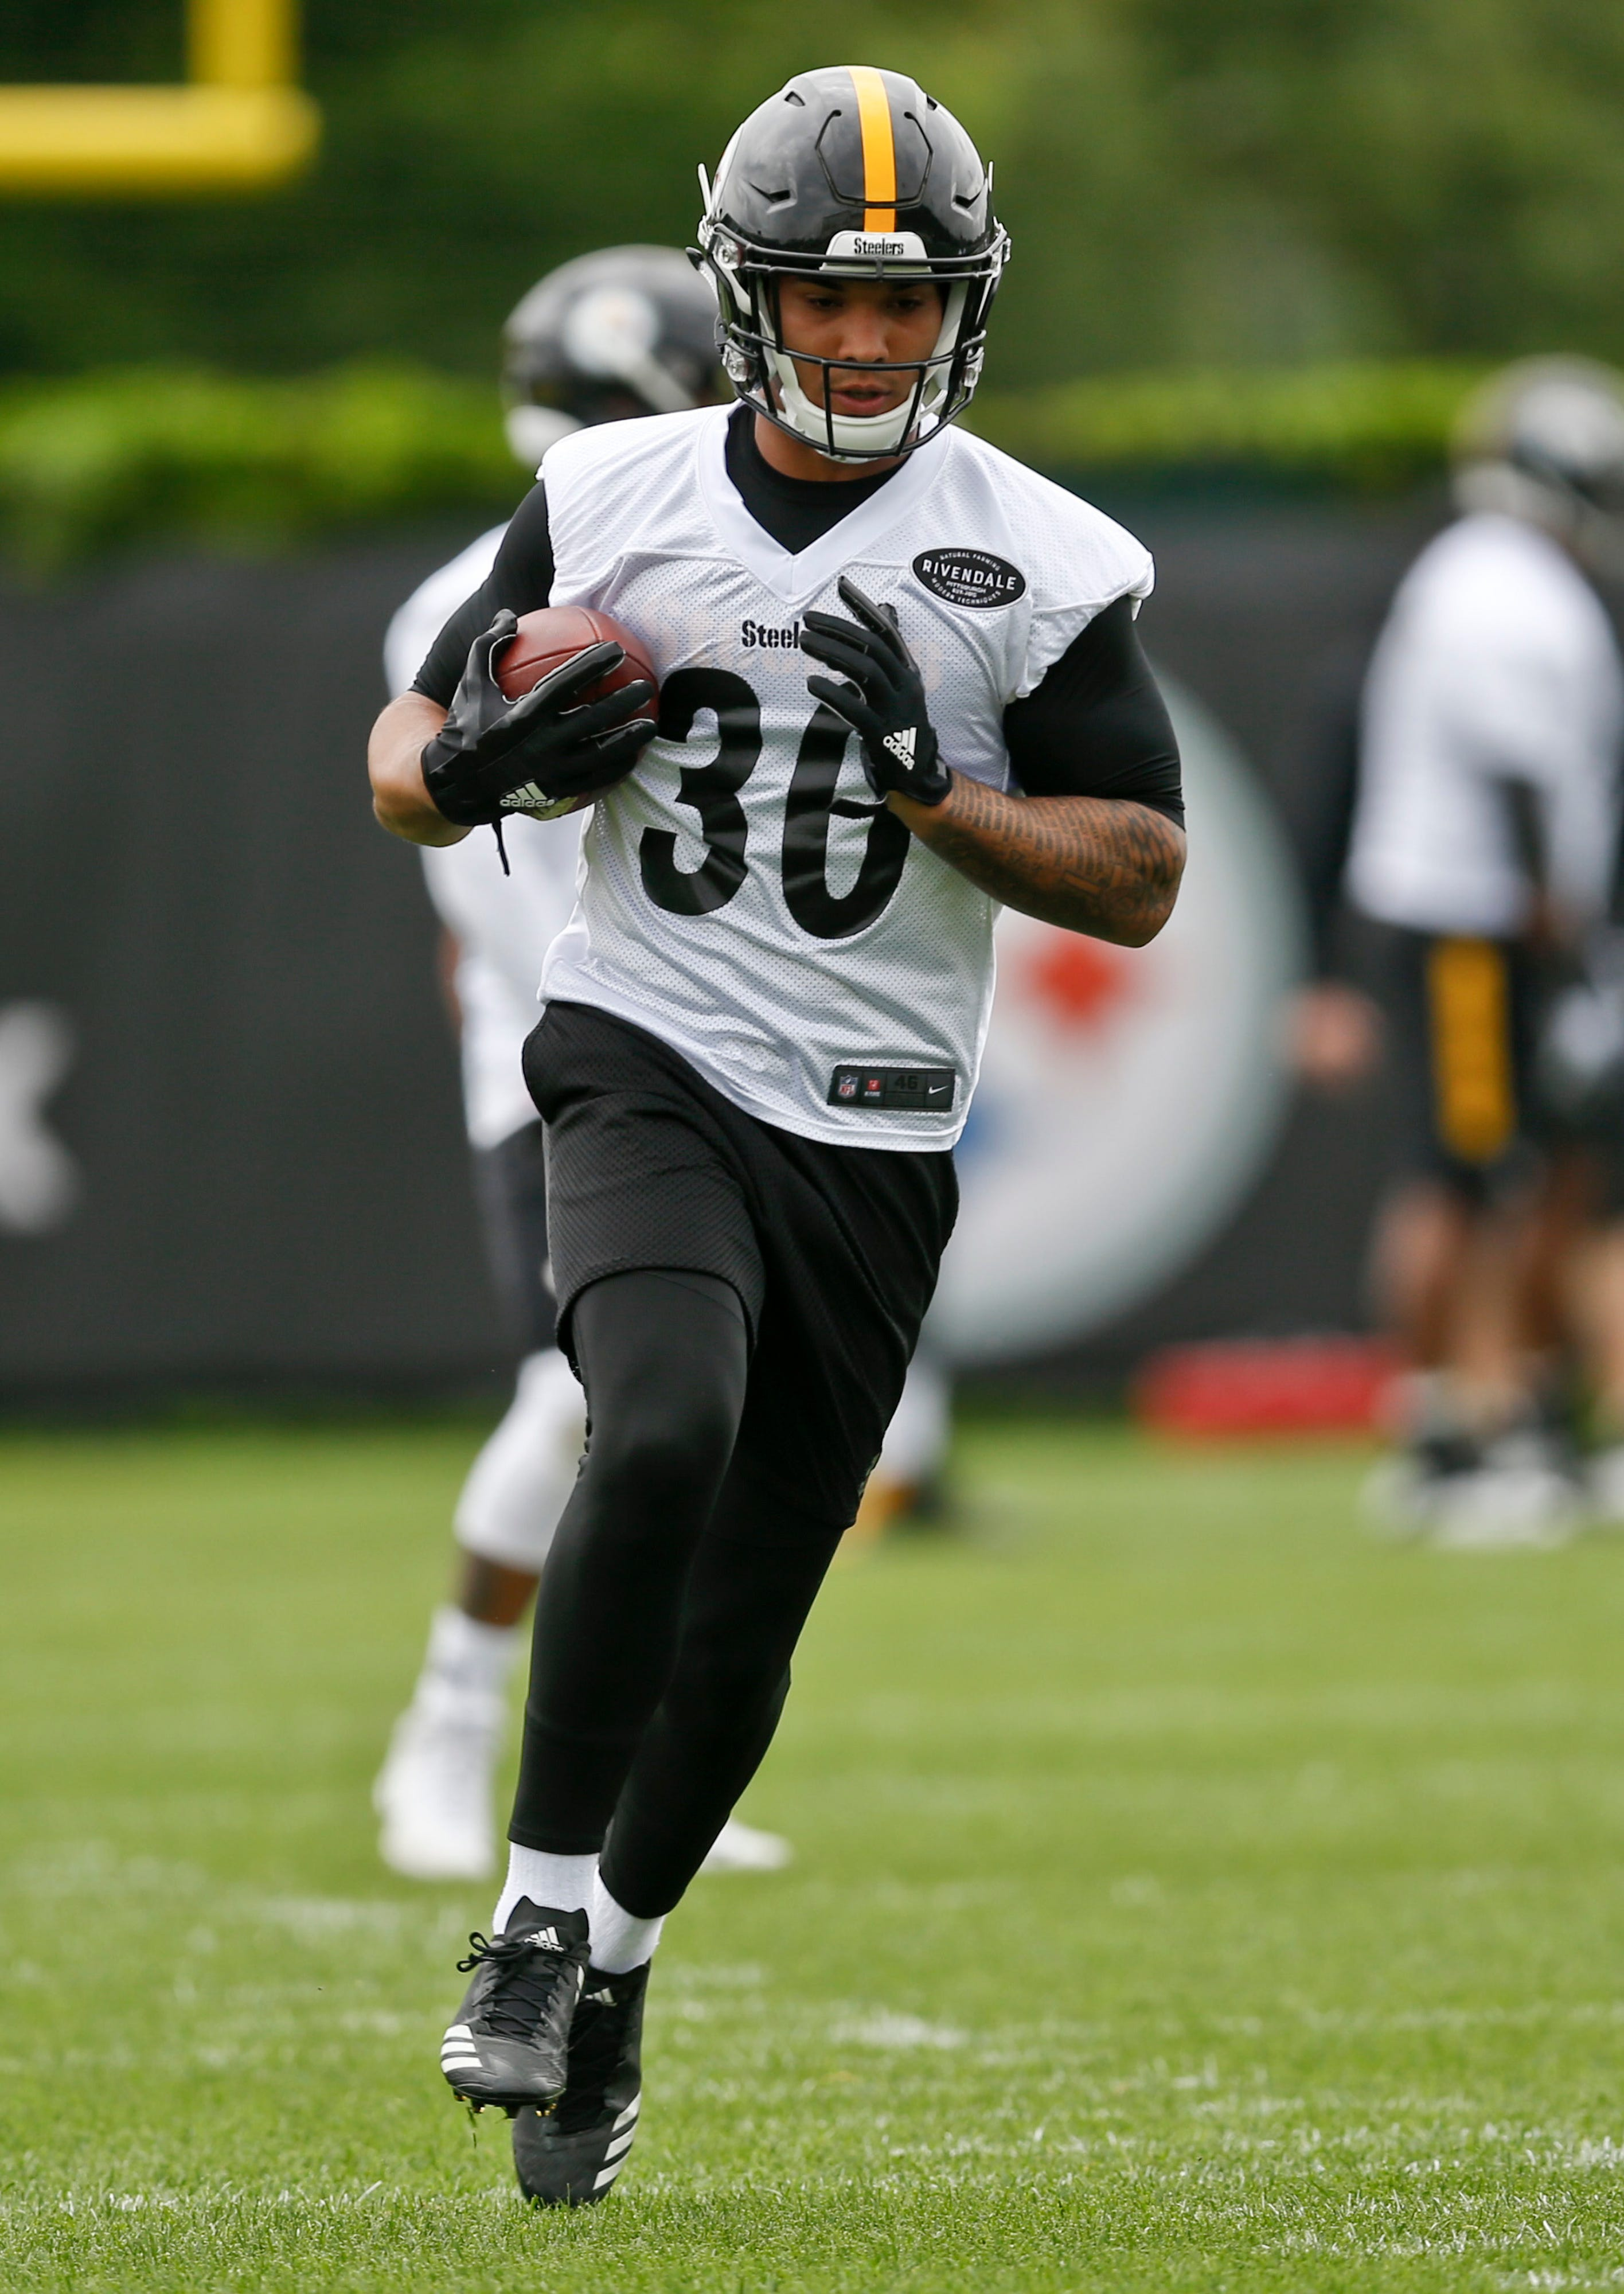 While Bell stays home, rookie Samuels looks to impress